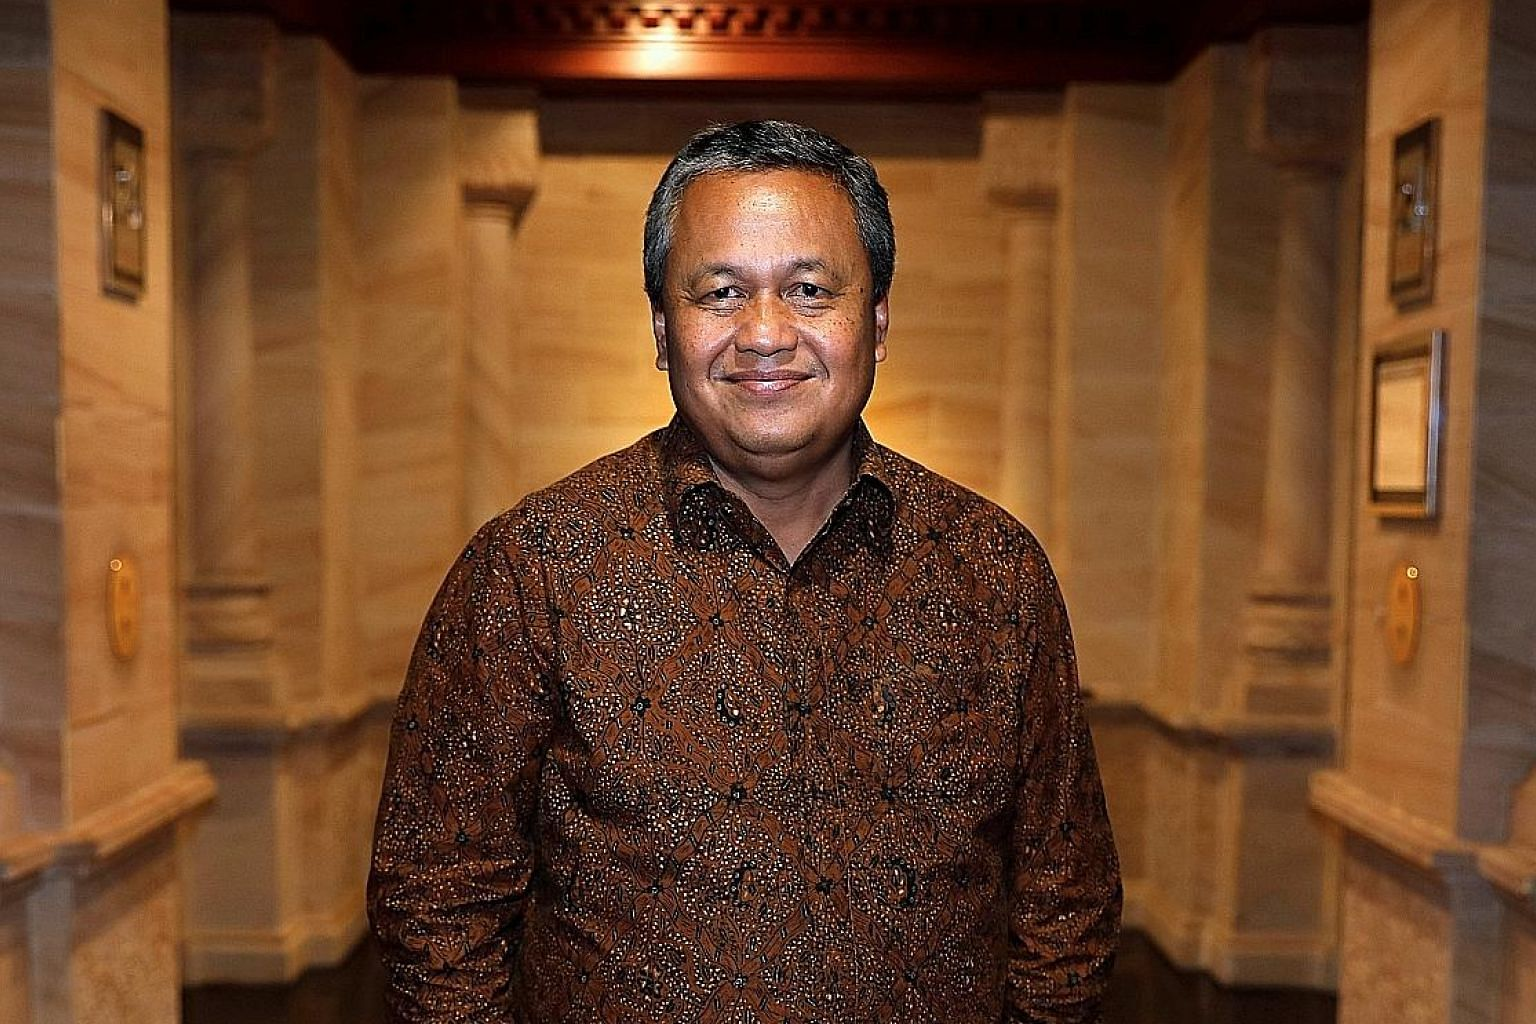 Bank Indonesia governor Perry Warjiyo, seen here at the central bank's headquarters in Jakarta, has been credited with doing the best he can to manage the volatile rupiah after assuming office in May, through measures such as imposing rate hikes and